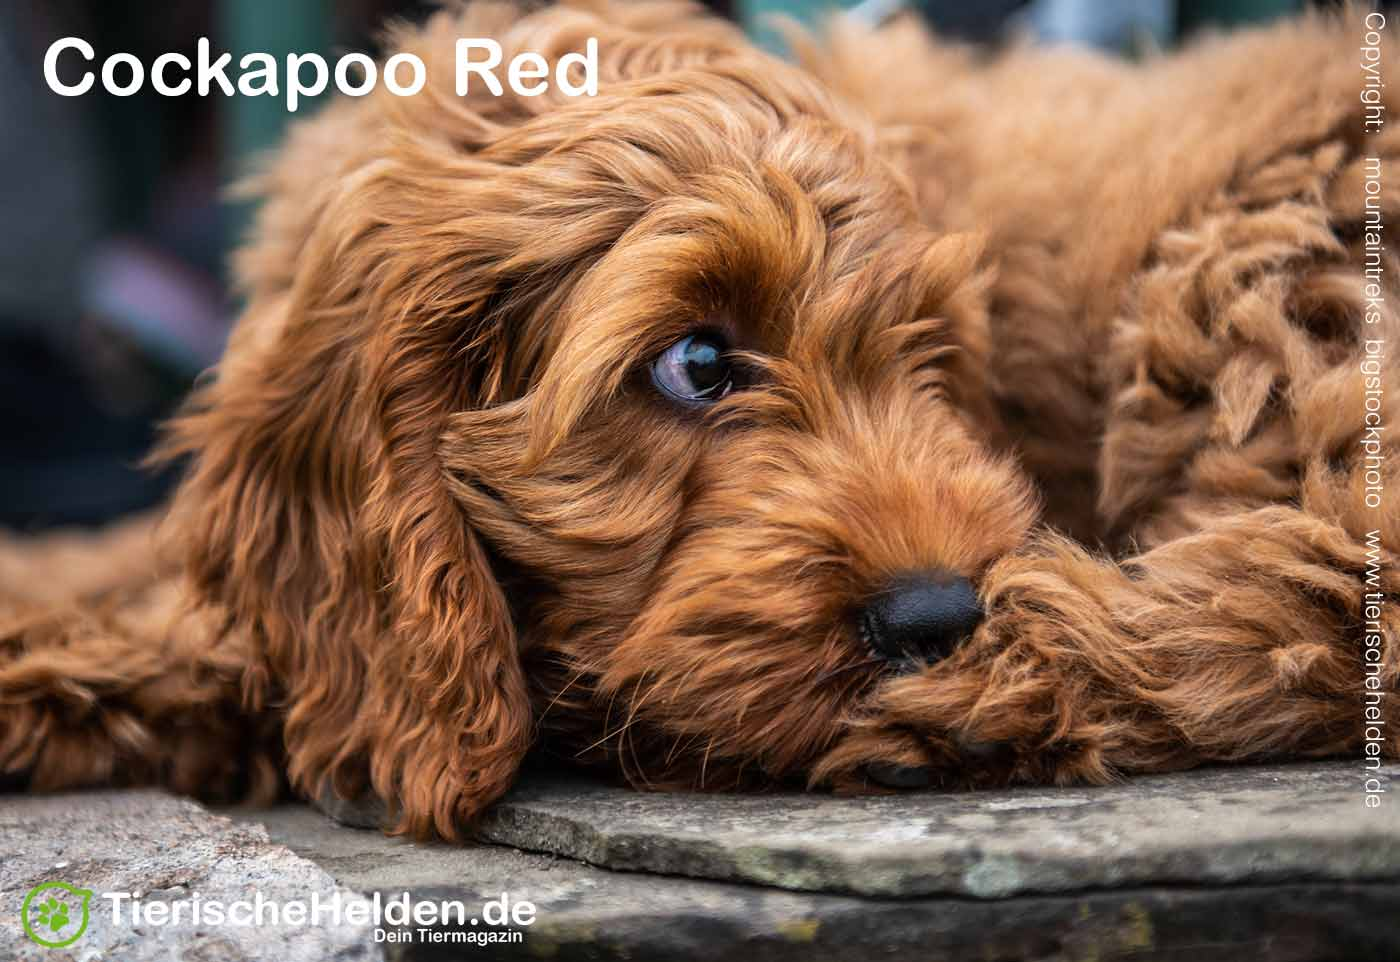 Cockapoo Red